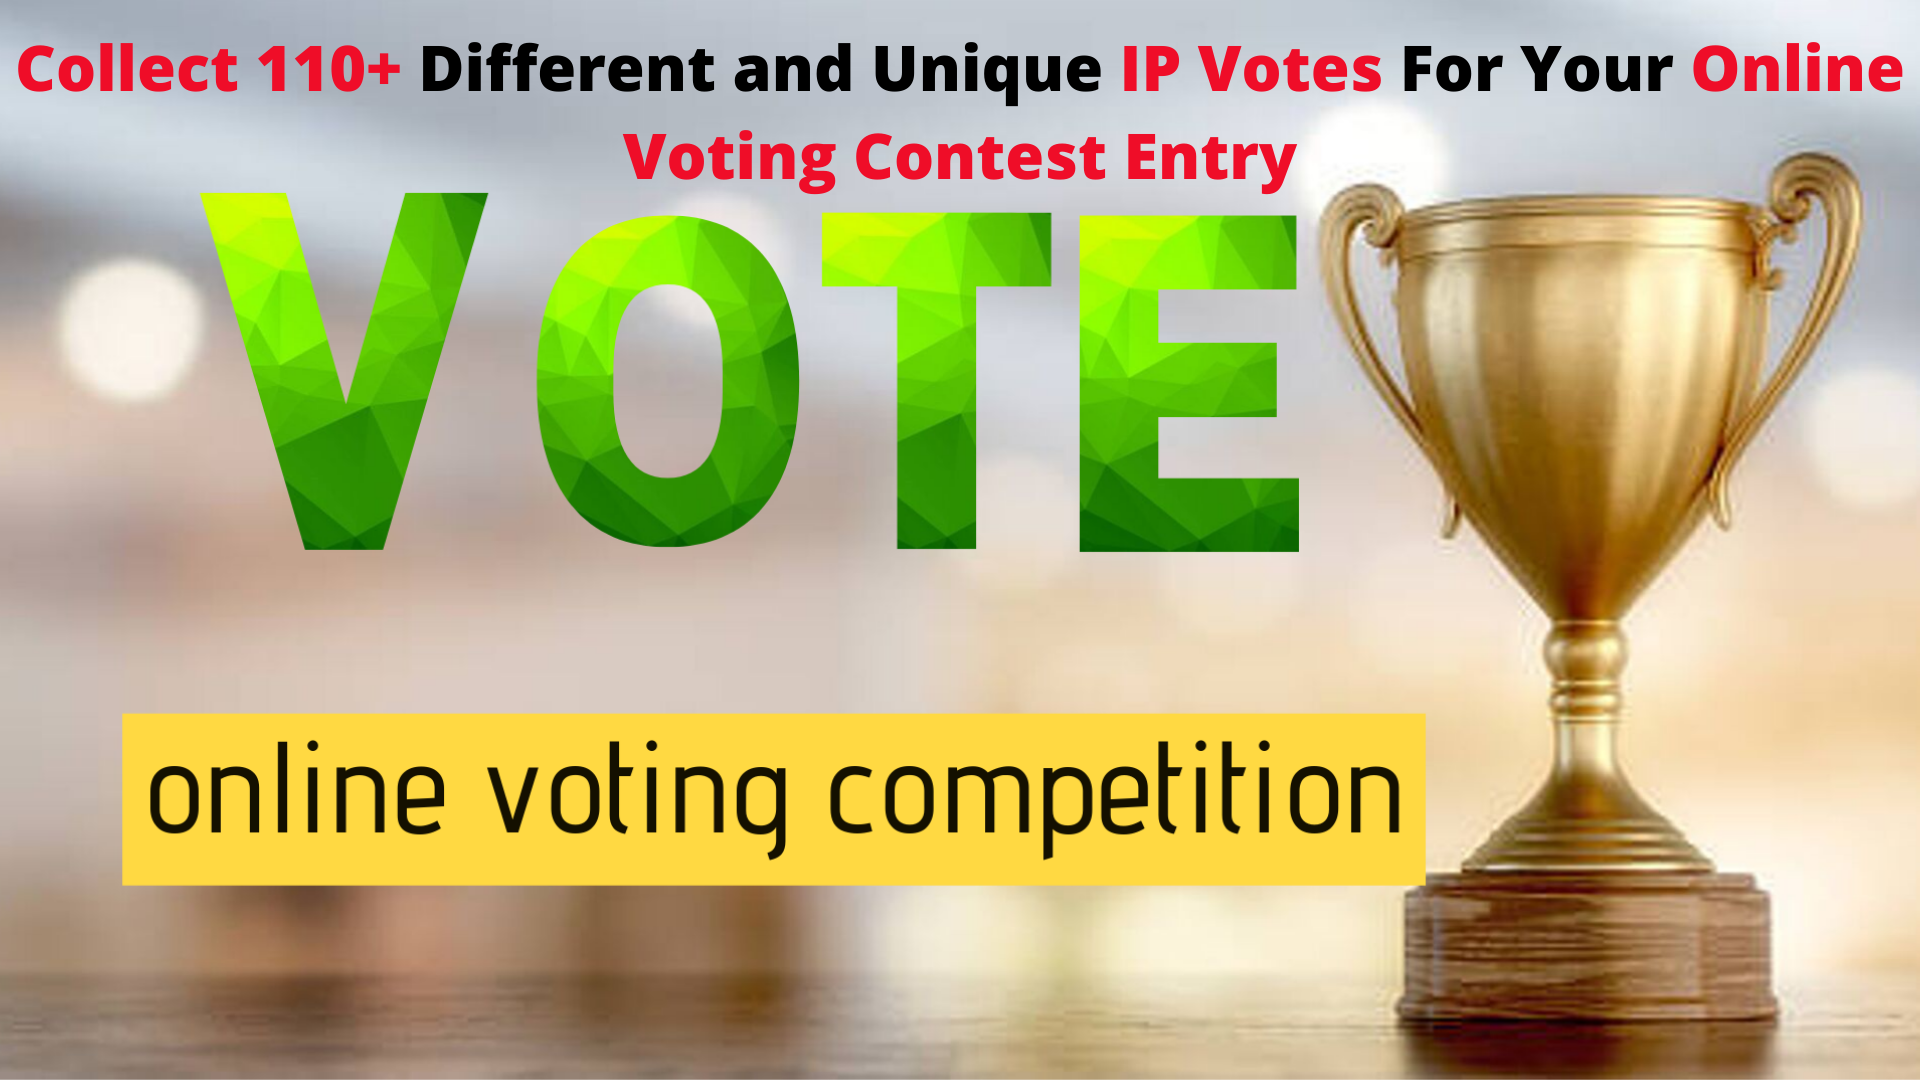 Collect 110+ Different and Unique IP Votes For Your Online Voting Contest Entry